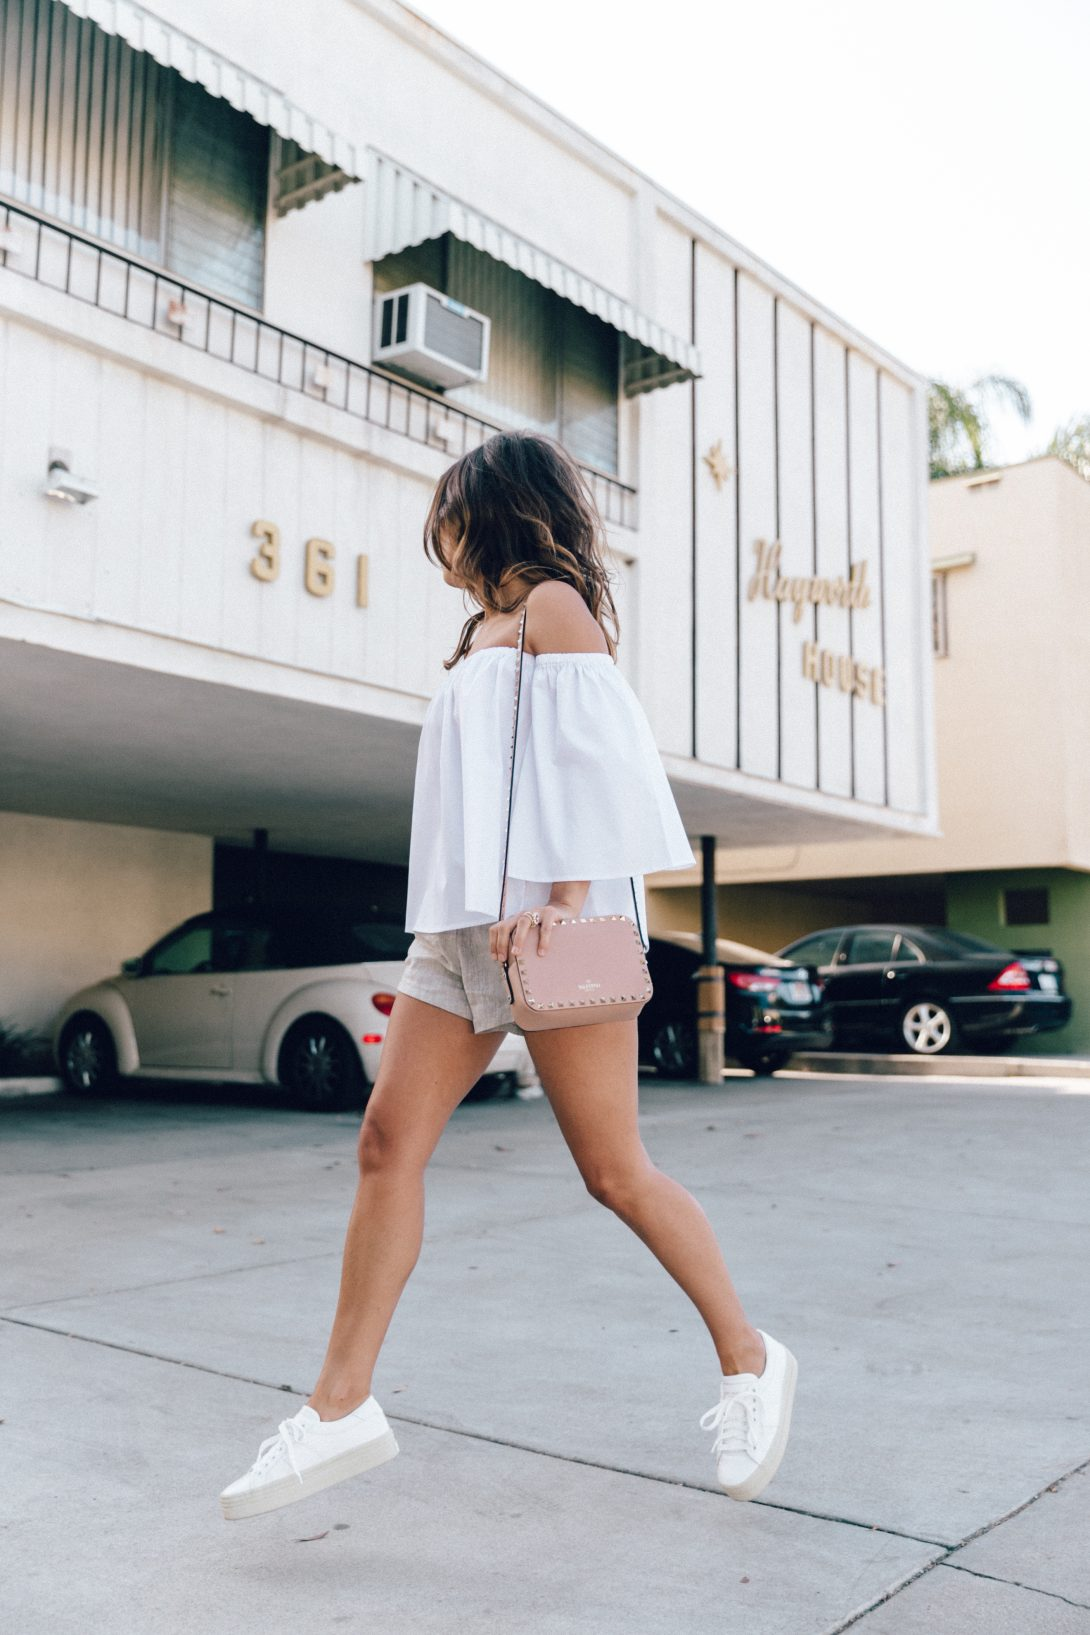 Off_The_Shoulders-Chicwish-Valentino_Bag-Monnier_Fevres-Sneakers-Saint_Laurent-Reformation_Shorts-Outfit-Los_Angeles--35